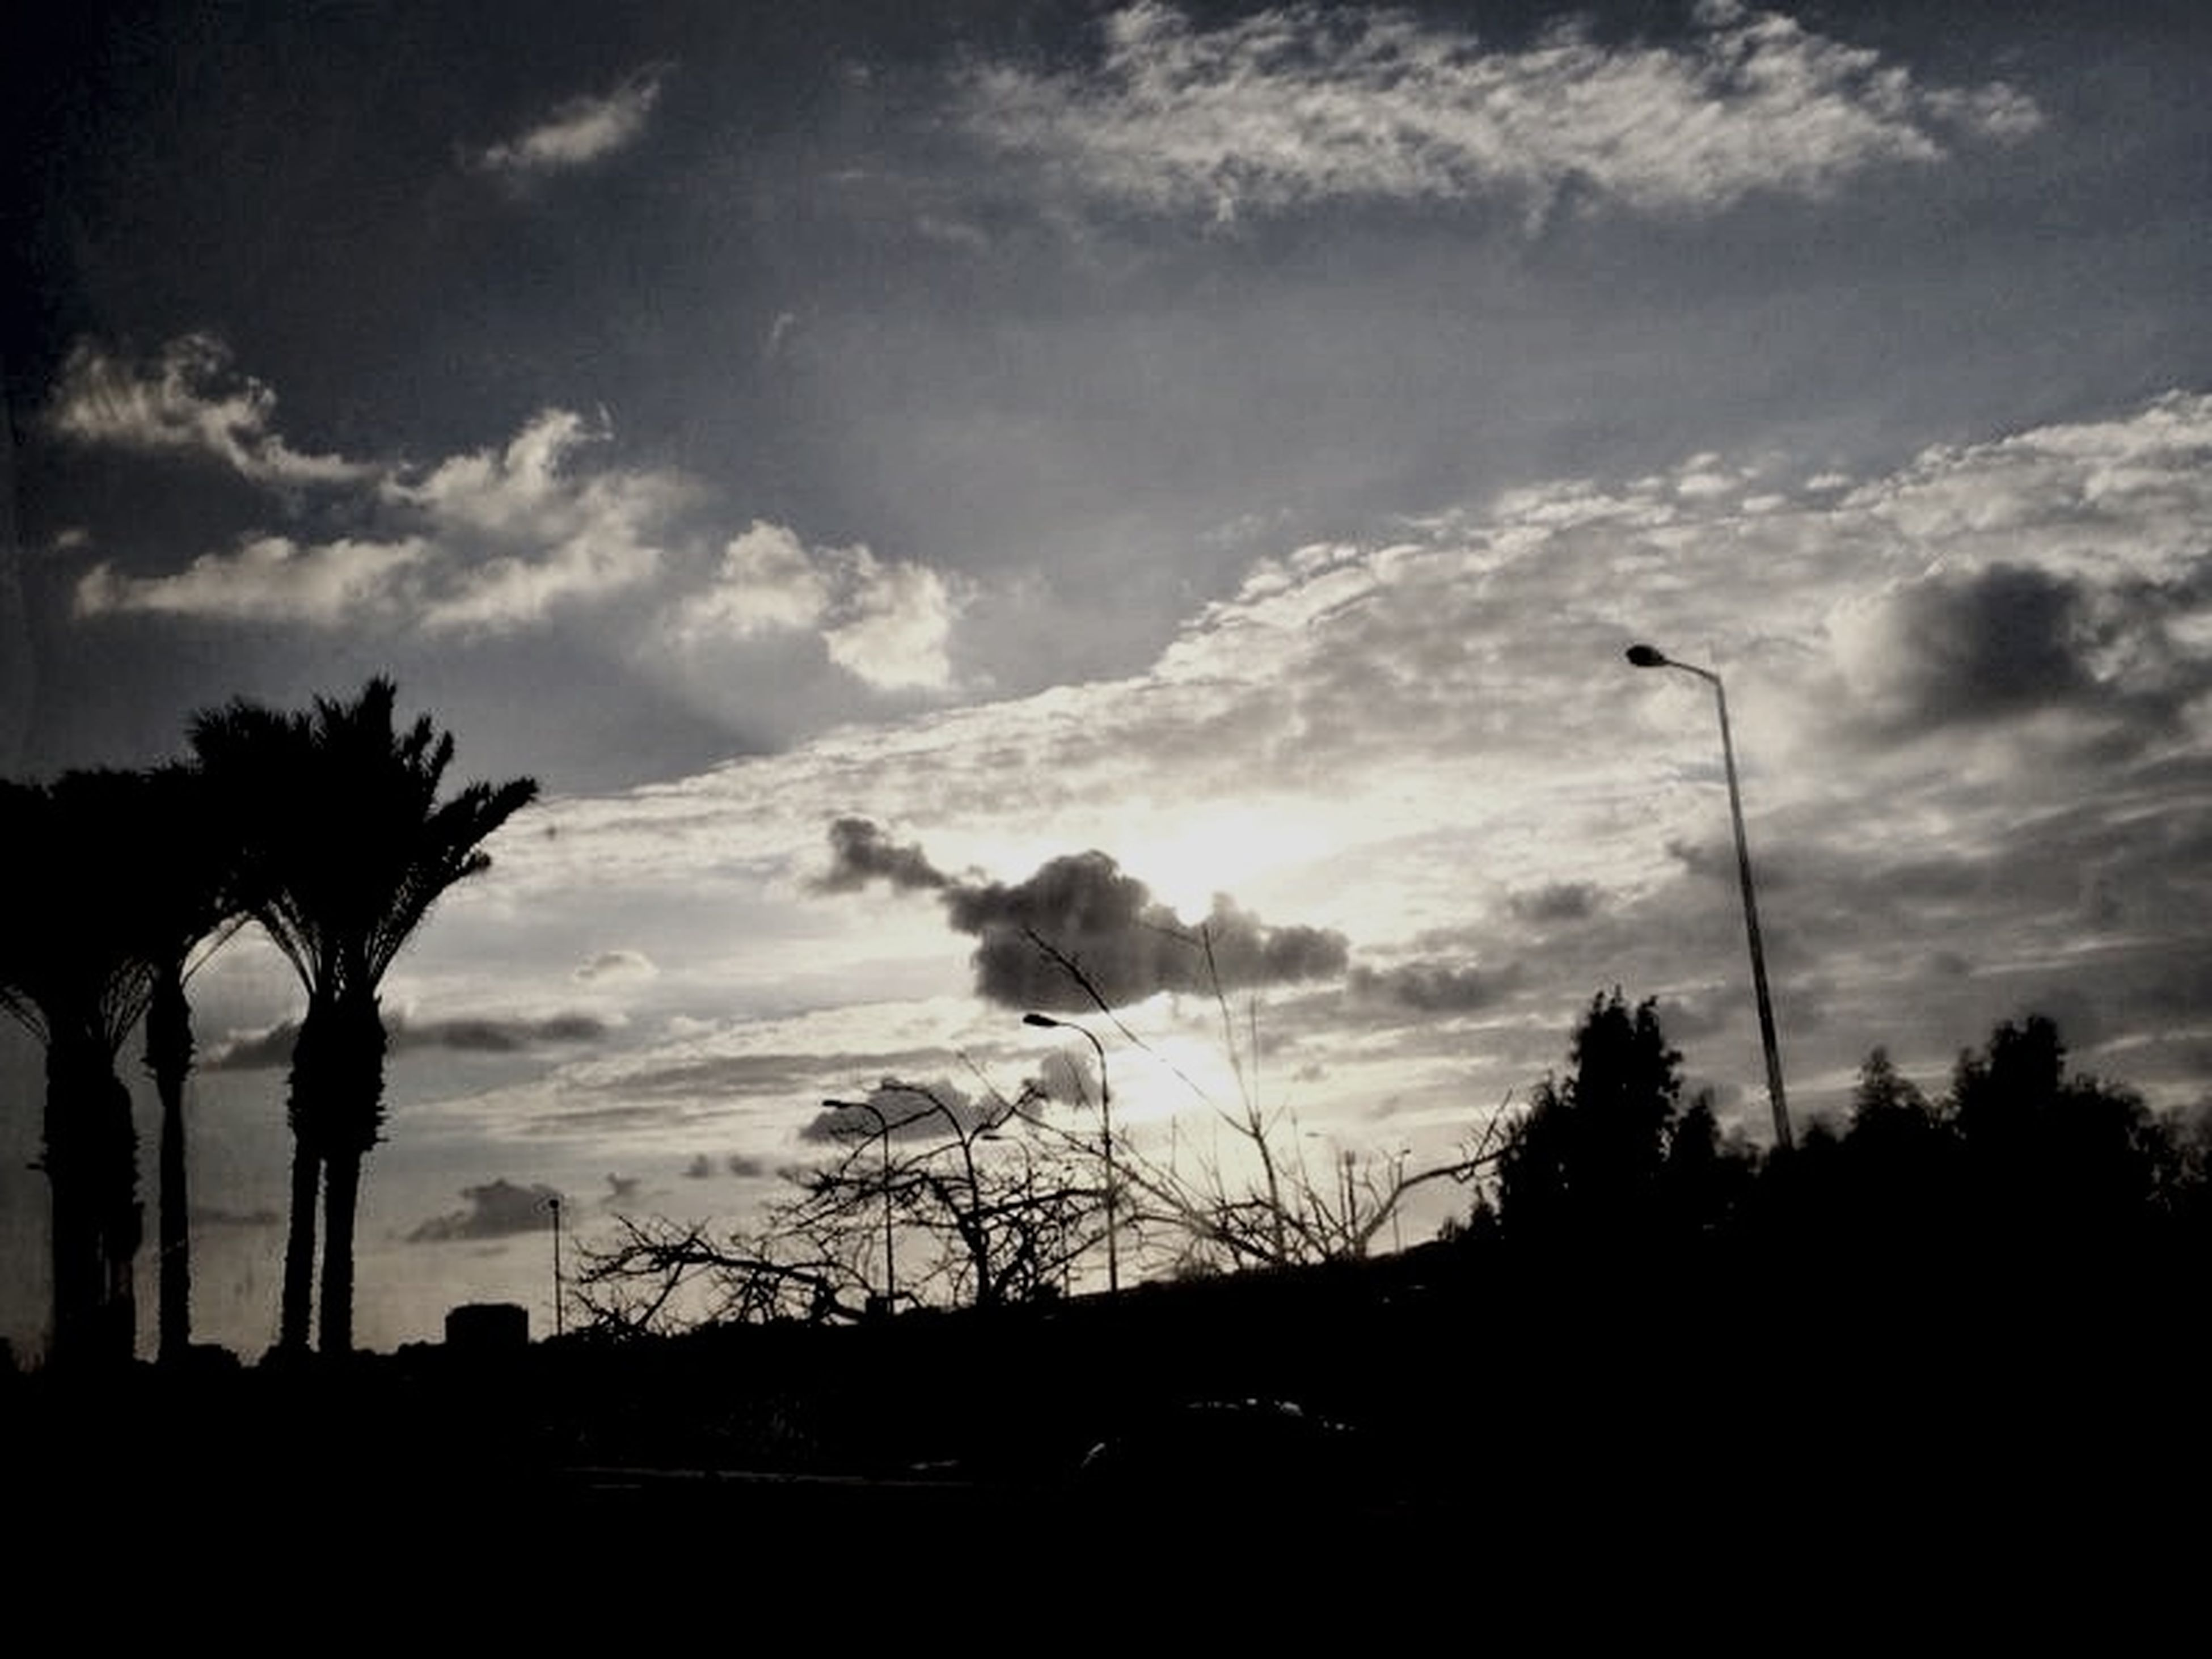 silhouette, sky, tree, cloud - sky, low angle view, cloud, cloudy, street light, tranquility, sunset, nature, beauty in nature, dusk, tranquil scene, scenics, palm tree, outline, outdoors, bare tree, no people